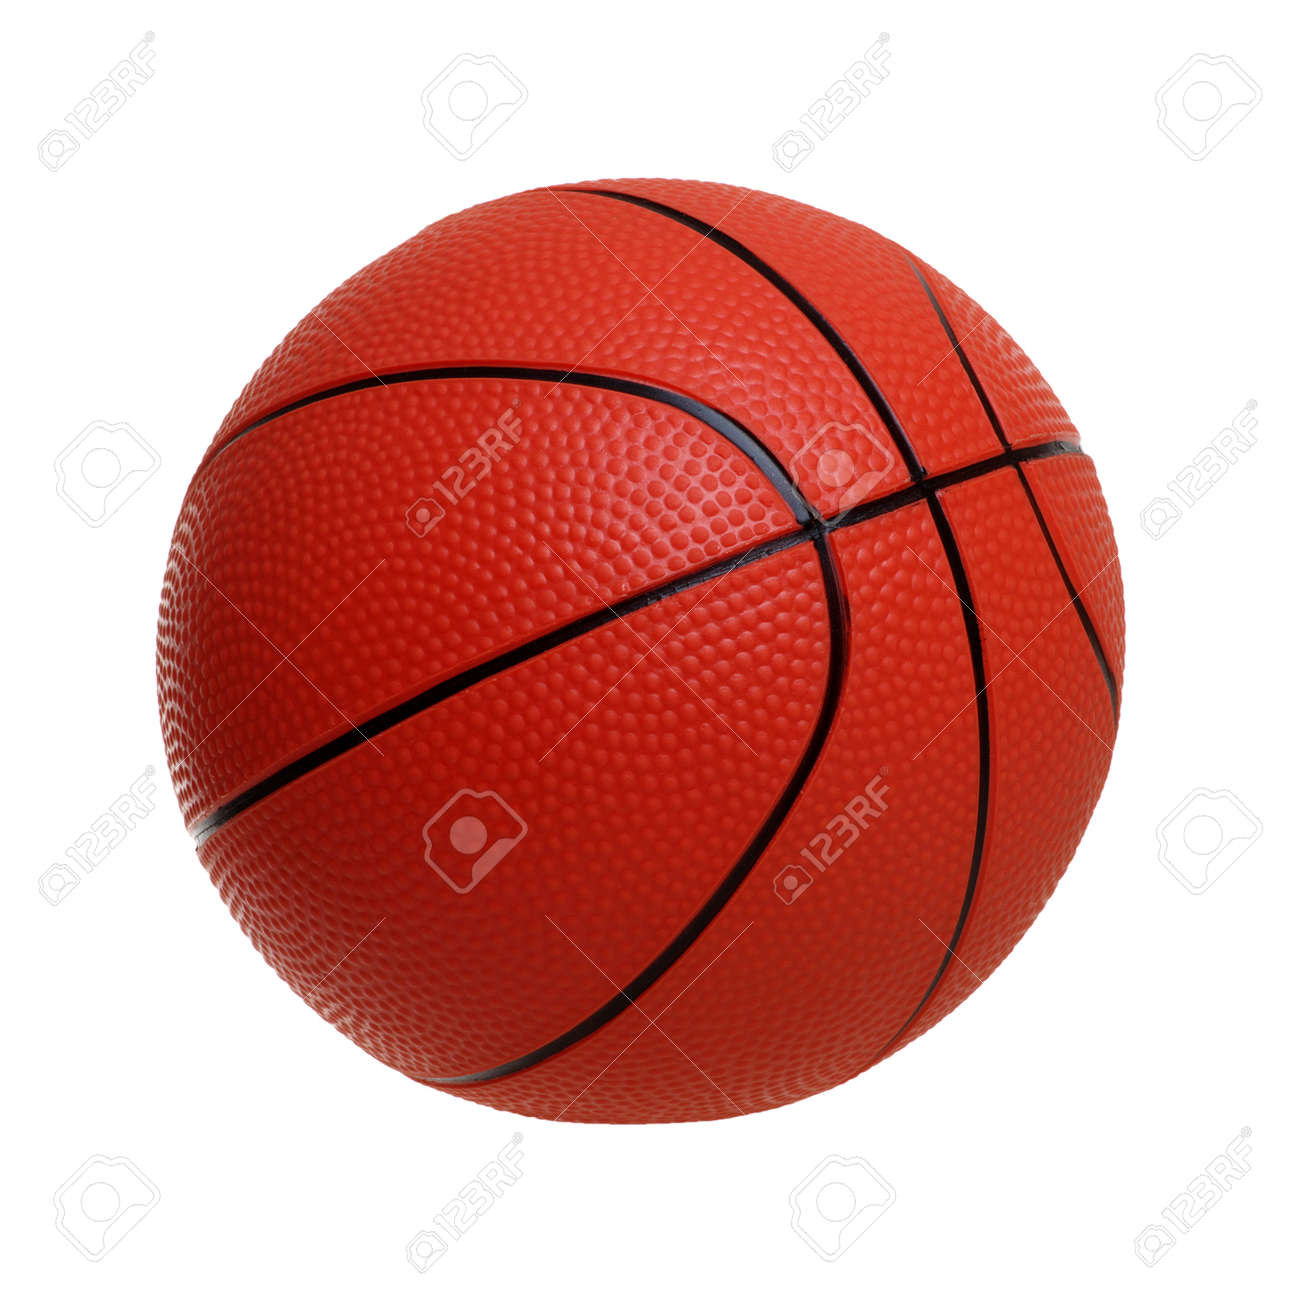 Basketball toy isolated on a white background - 130280172